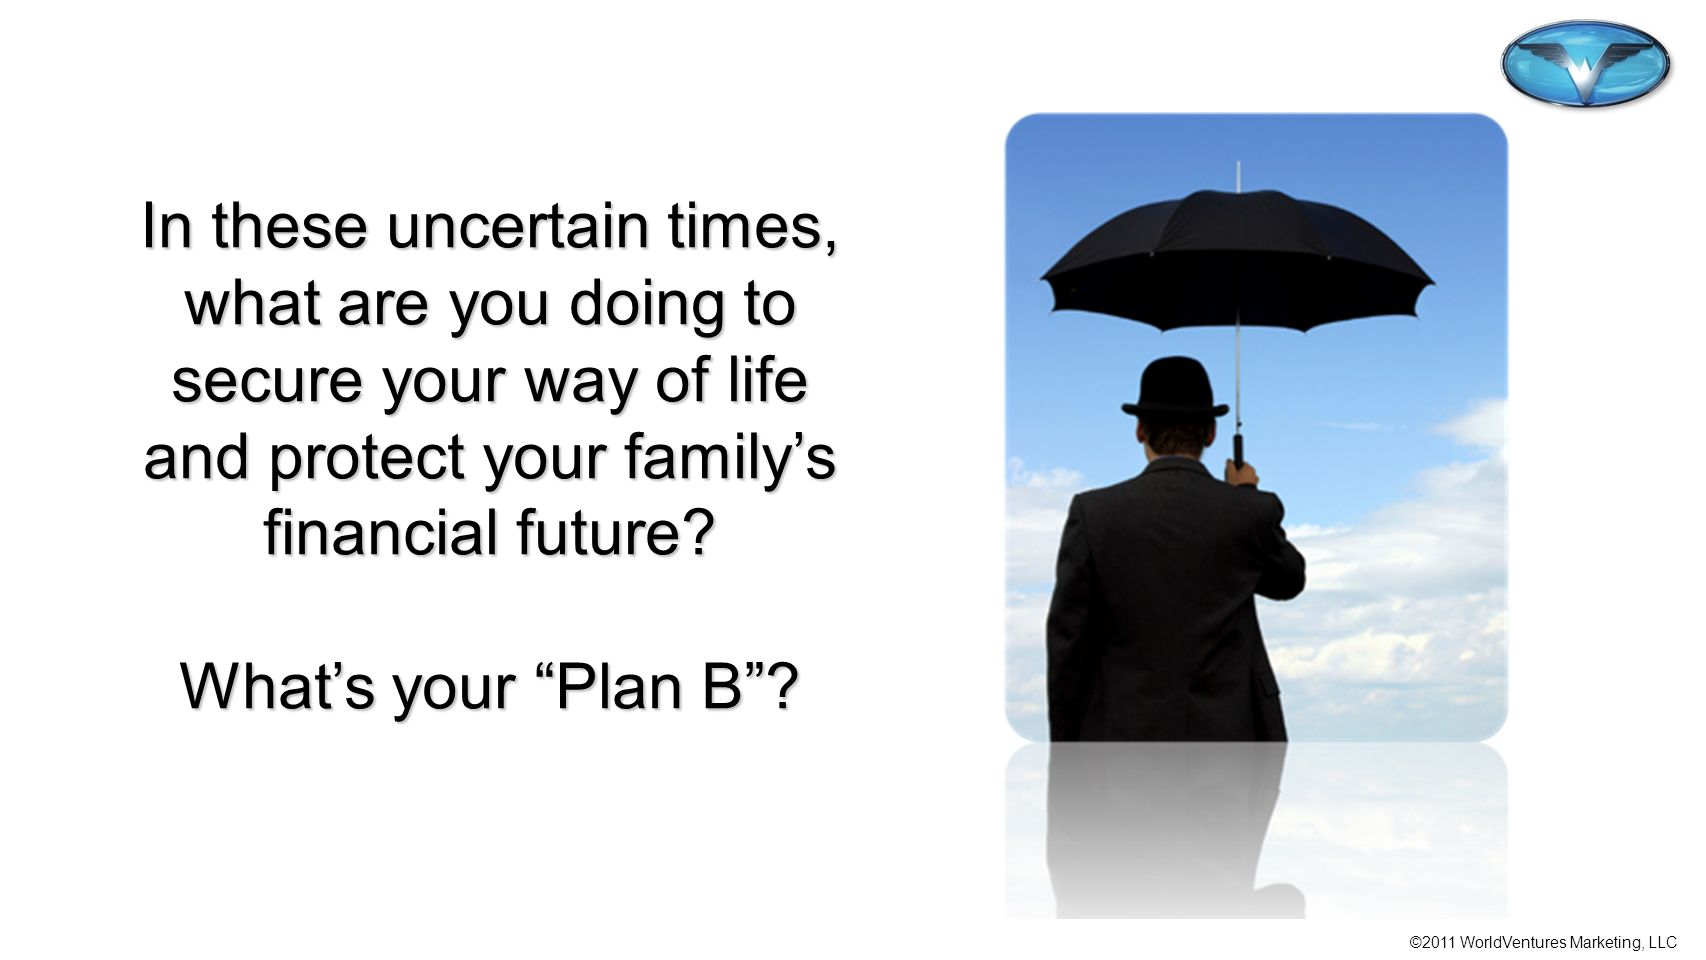 In these uncertain times, what are you doing to secure your way of life and protect your family's financial future